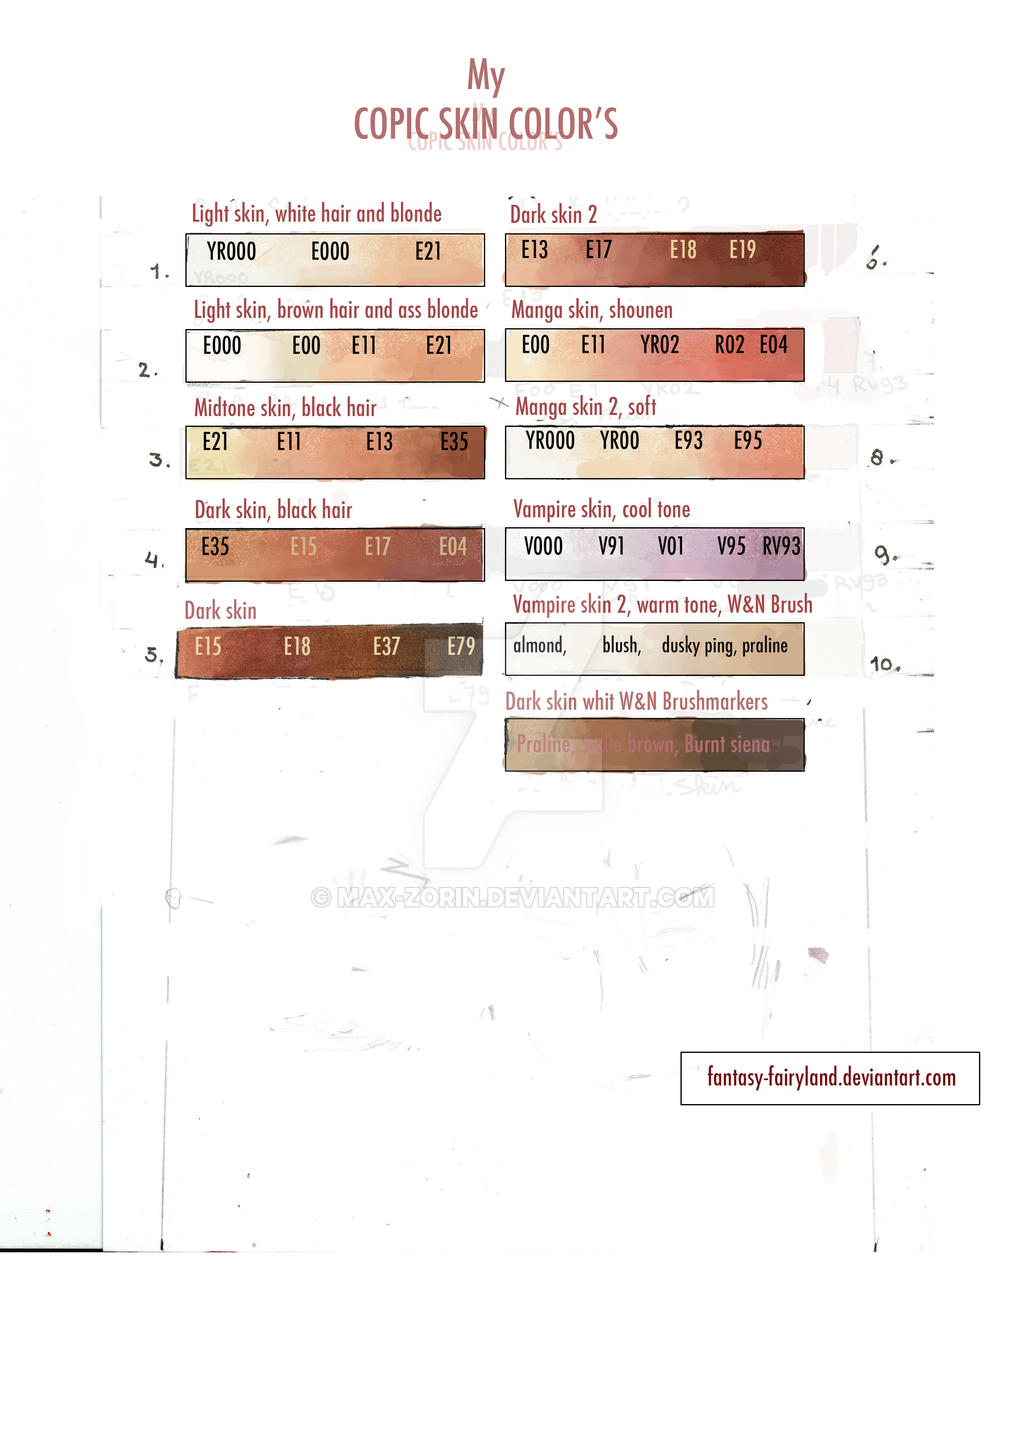 My colic skin color chart by fantasy-fairyland